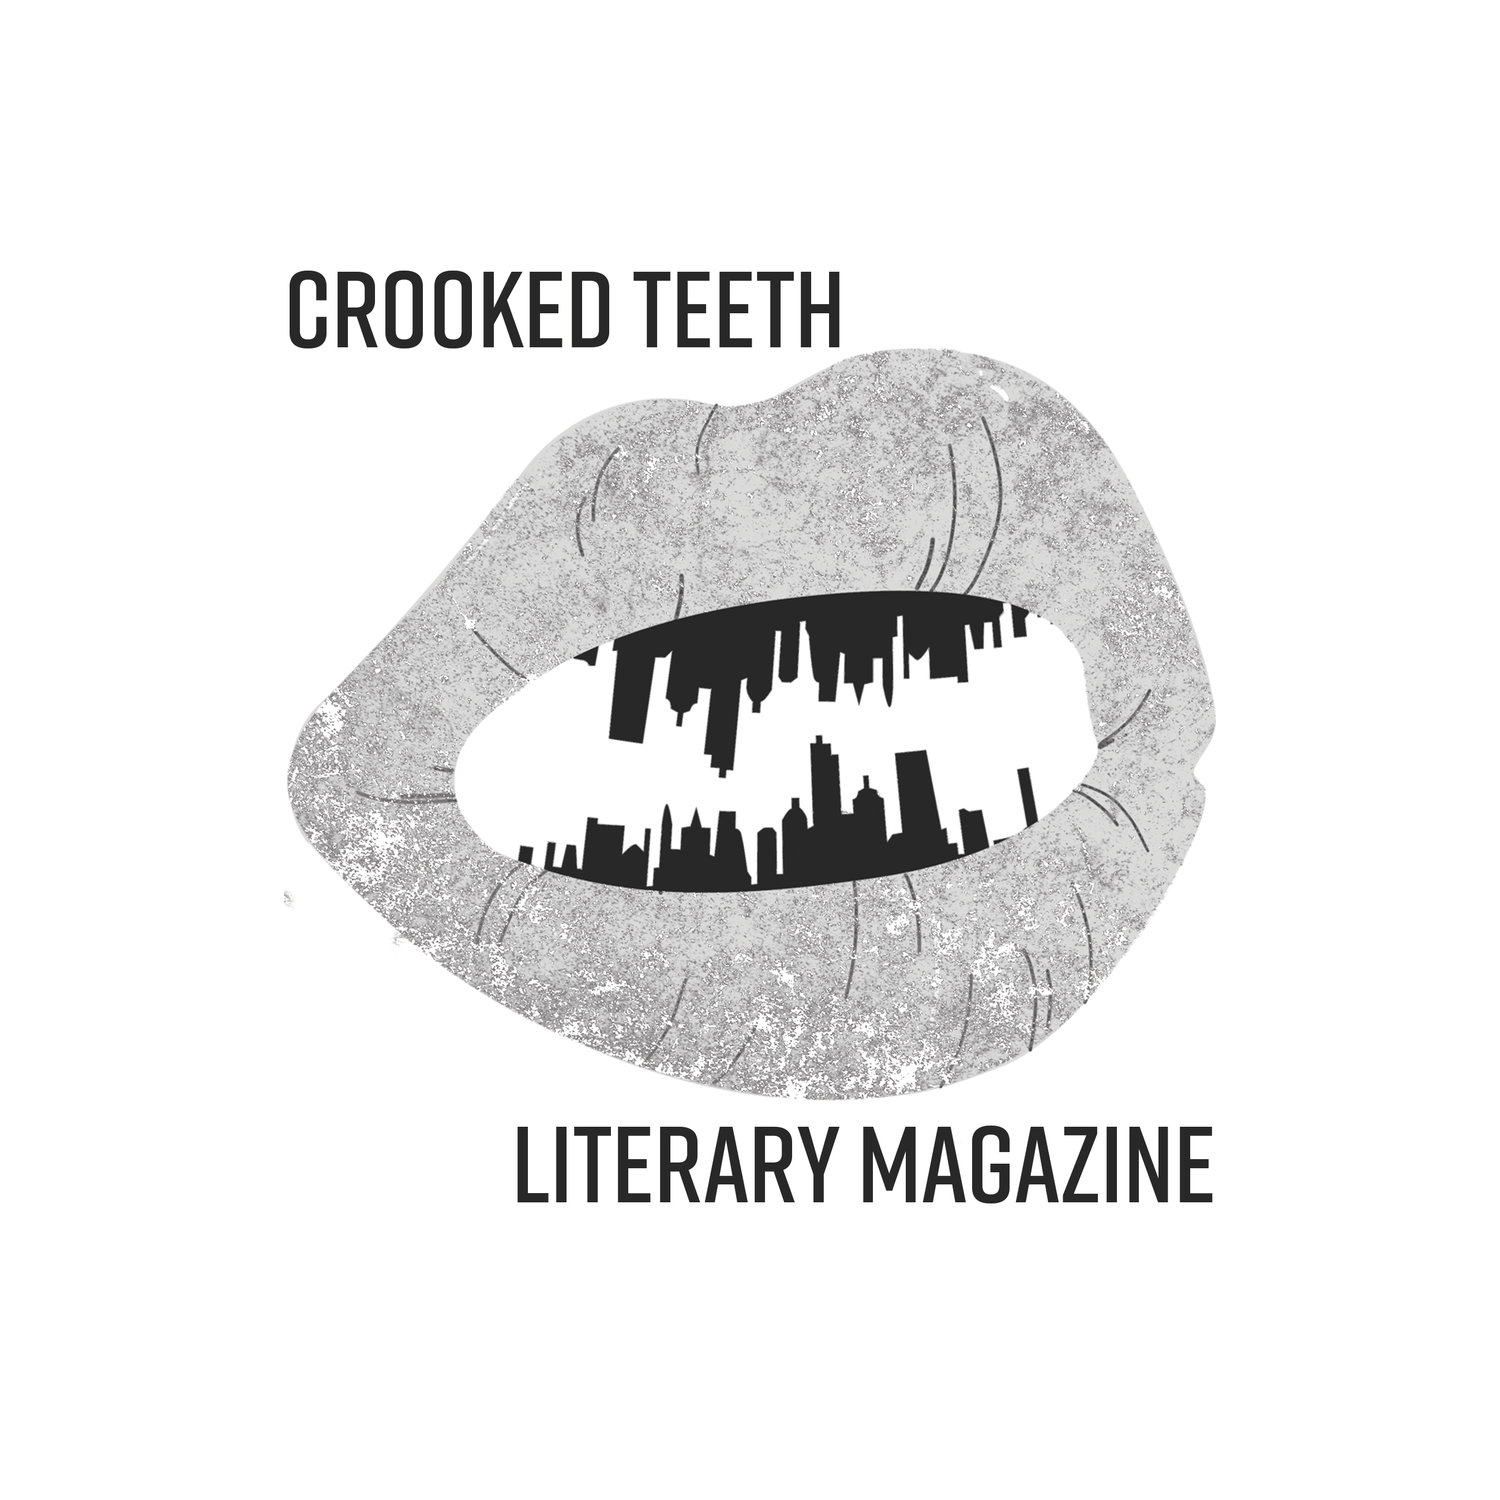 Crooked Teeth Literary Magazine